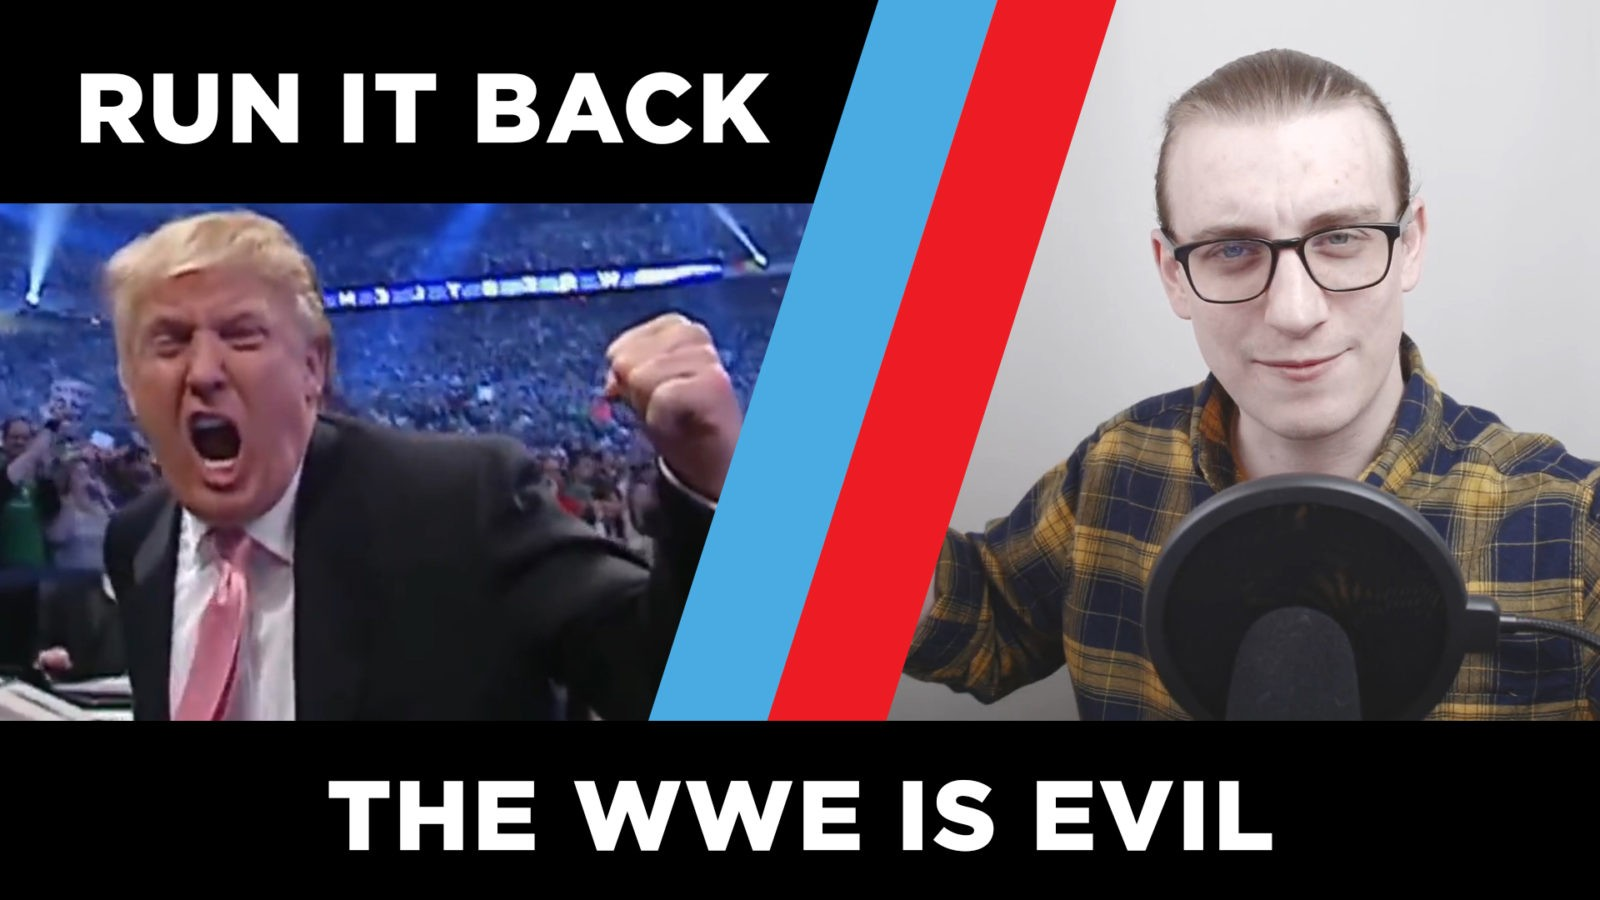 RUN IT BACK ep2 | The WWE is Evil! Feat. Donald Trump, Saudi Arabia, & a Super PAC